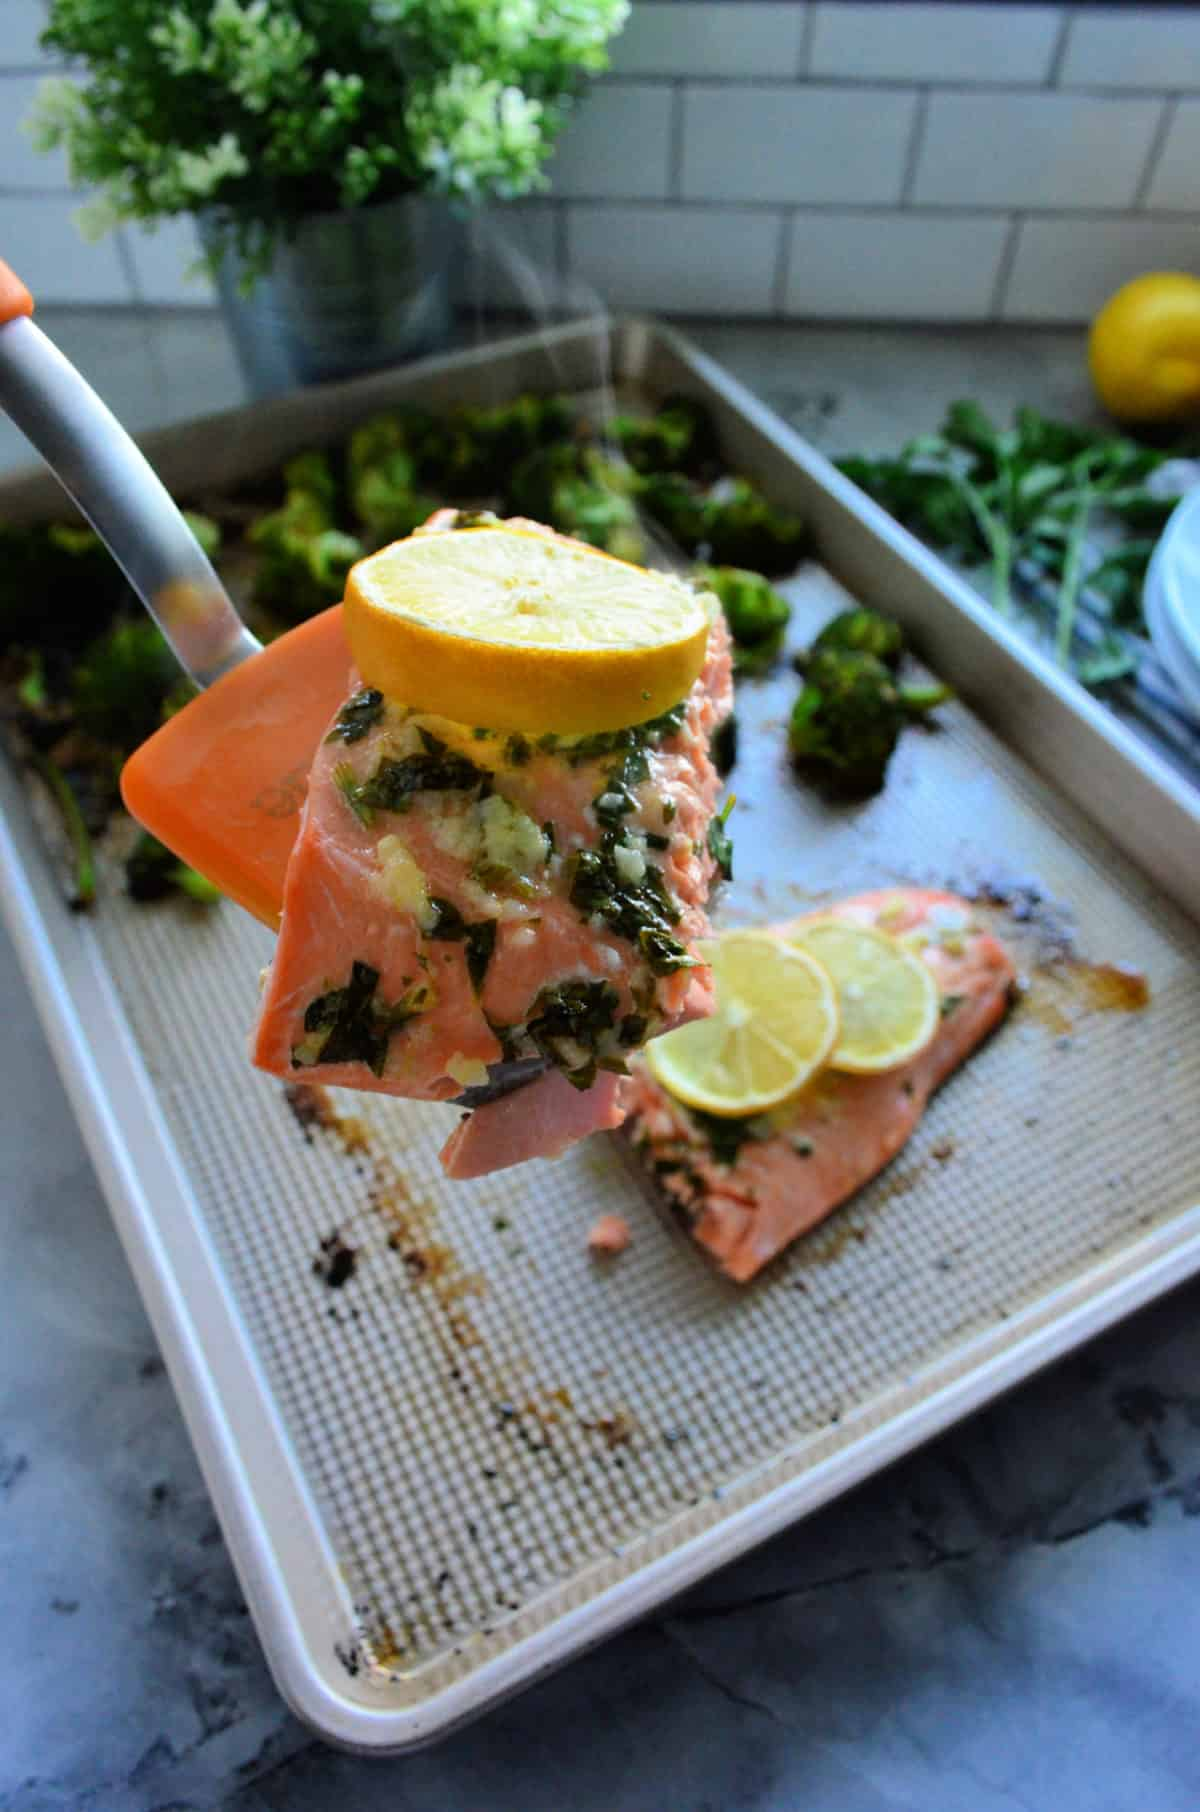 spatula holding herb-buttered salmon topped with lemon wheel over pan of remaining salmon.